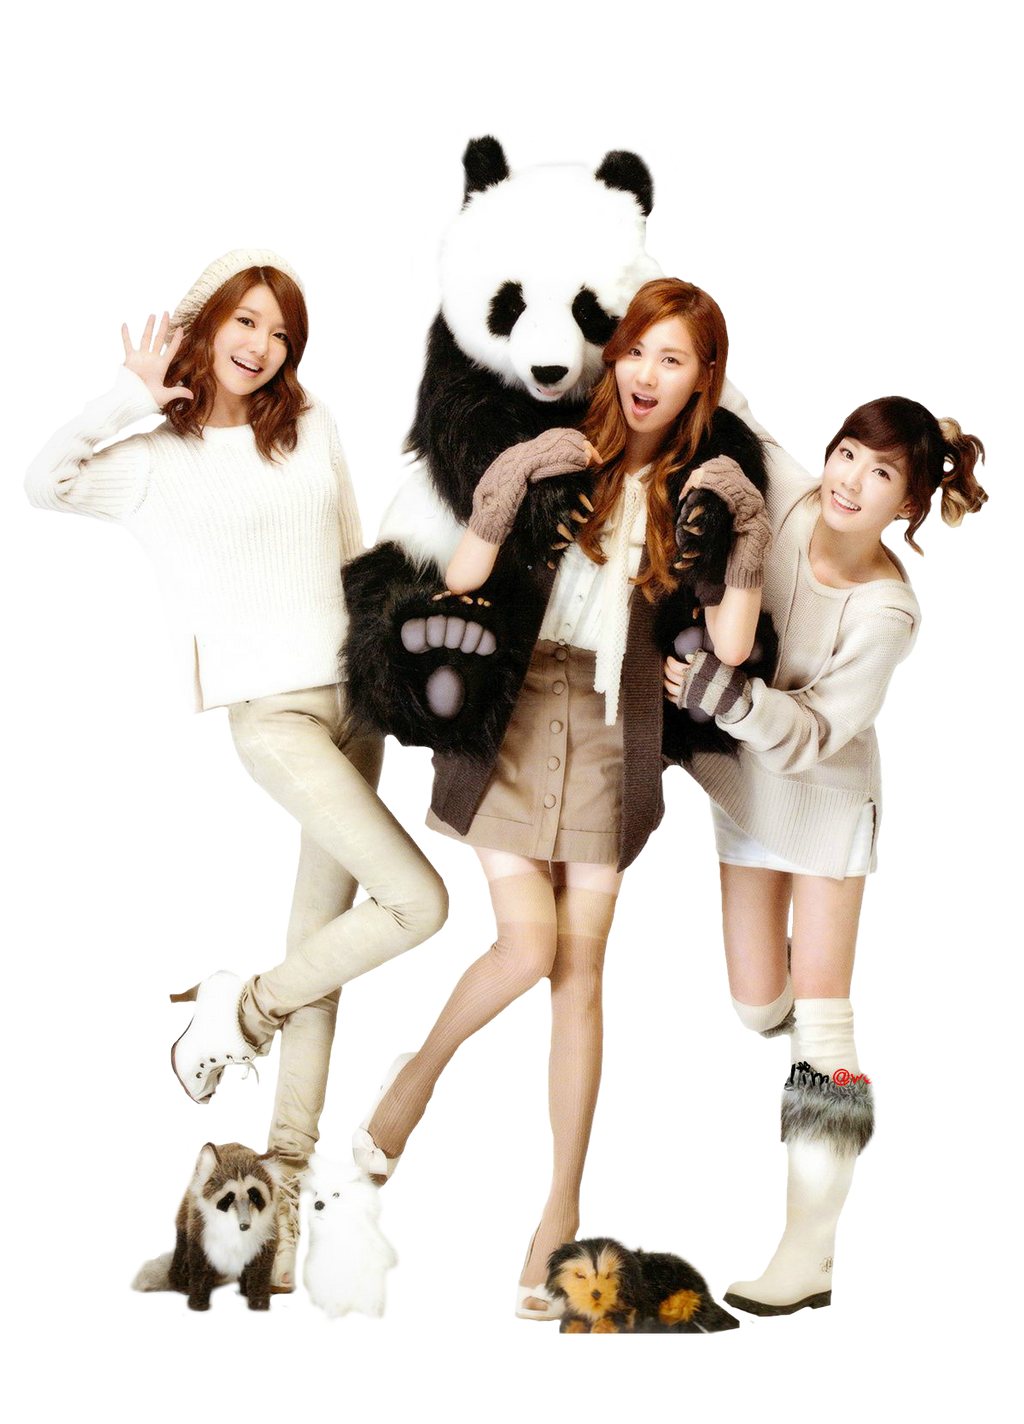 snsd taeyeon dating 2013 Boyish side of taeyeon snsd yuri wednesday, april 24, 2013 i know you heard the rumor of lee teuk x taeng and khun x fany secretly dating and.